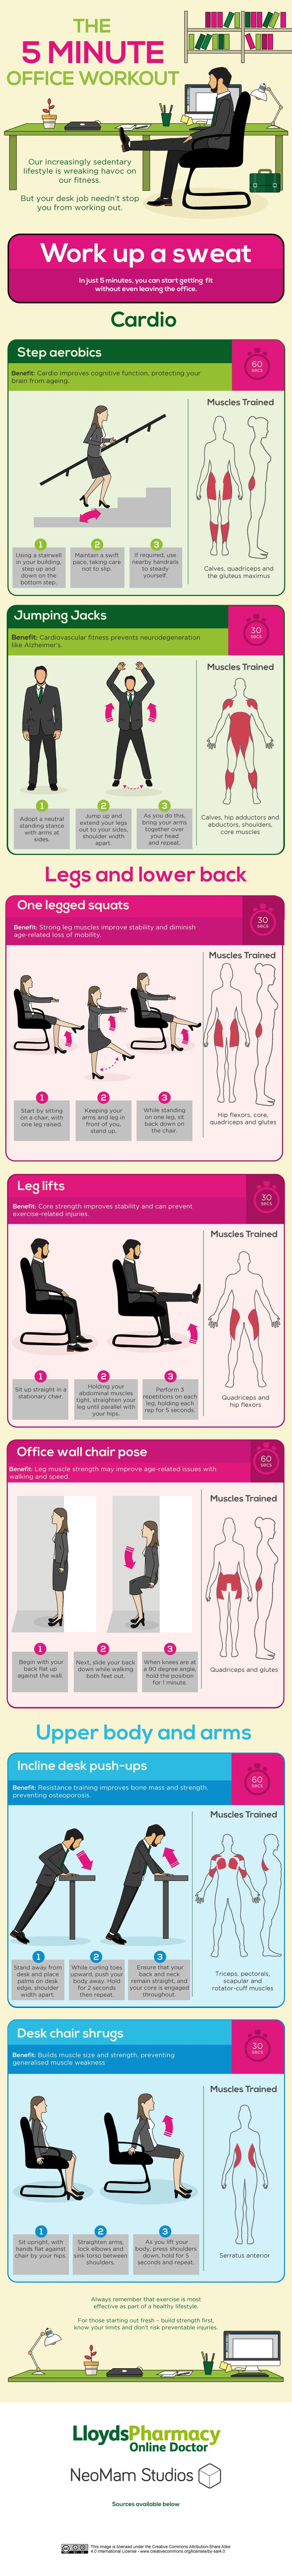 The 5 Minute Office Workout - Infographic